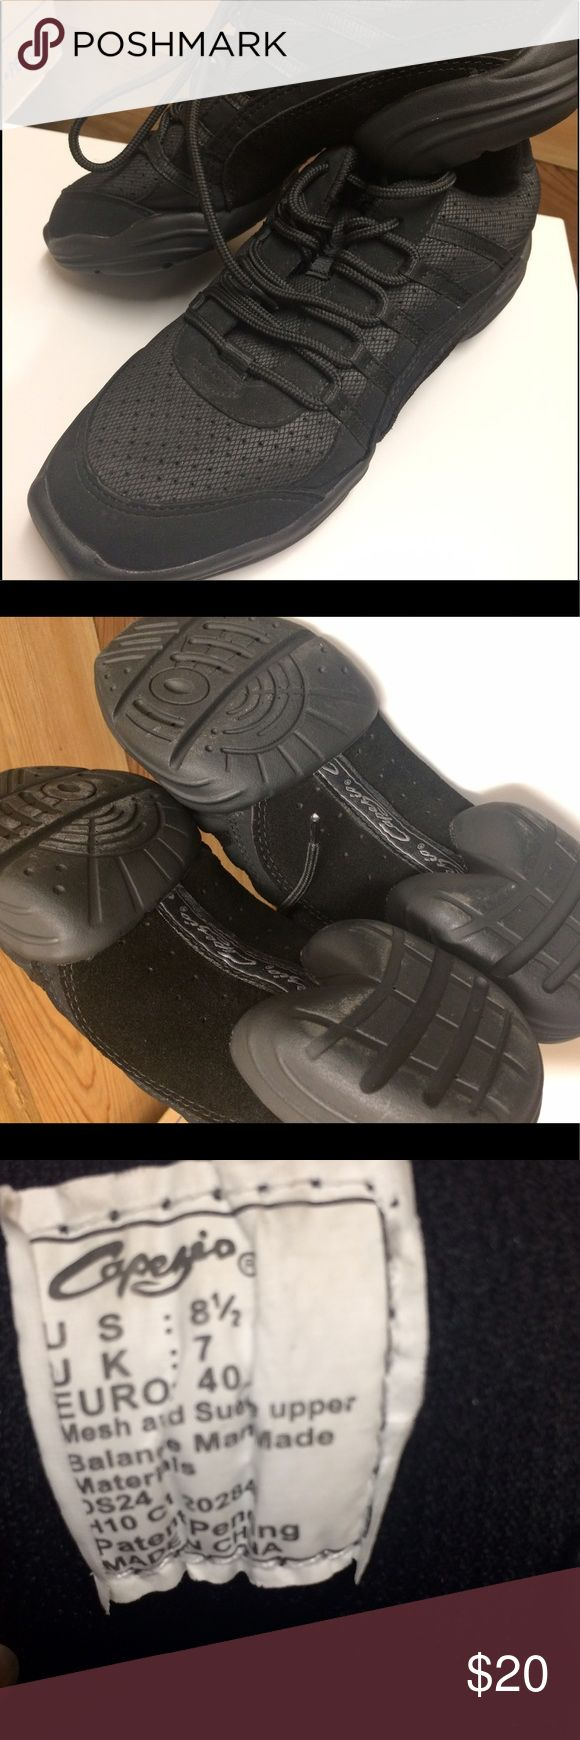 Capezio Jazz Hip Hop Dance Shoes Sneakers 8.5 Lightly worn, great condition Capezio Jazz Hip Hop Dance Shoes Sneakers 8.5. These are a reposh. The seller told me these are the same as street size but they are not. They are 1/2 small so would best fit an 8. Capezio Shoes